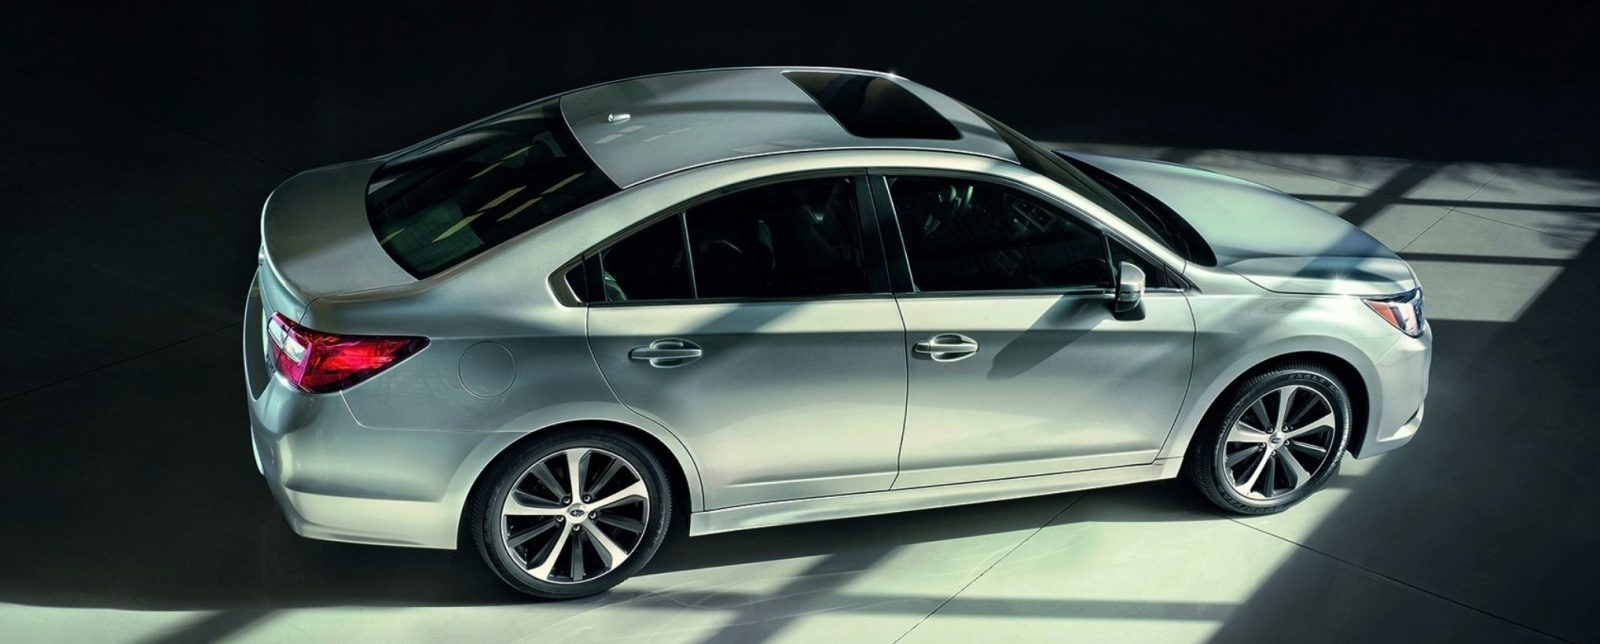 2015 Subaru Legacy Sedan -- More Lux and Tech in Cabin -- Finally Some Exterior Style -- Even 36MPG Highway  11